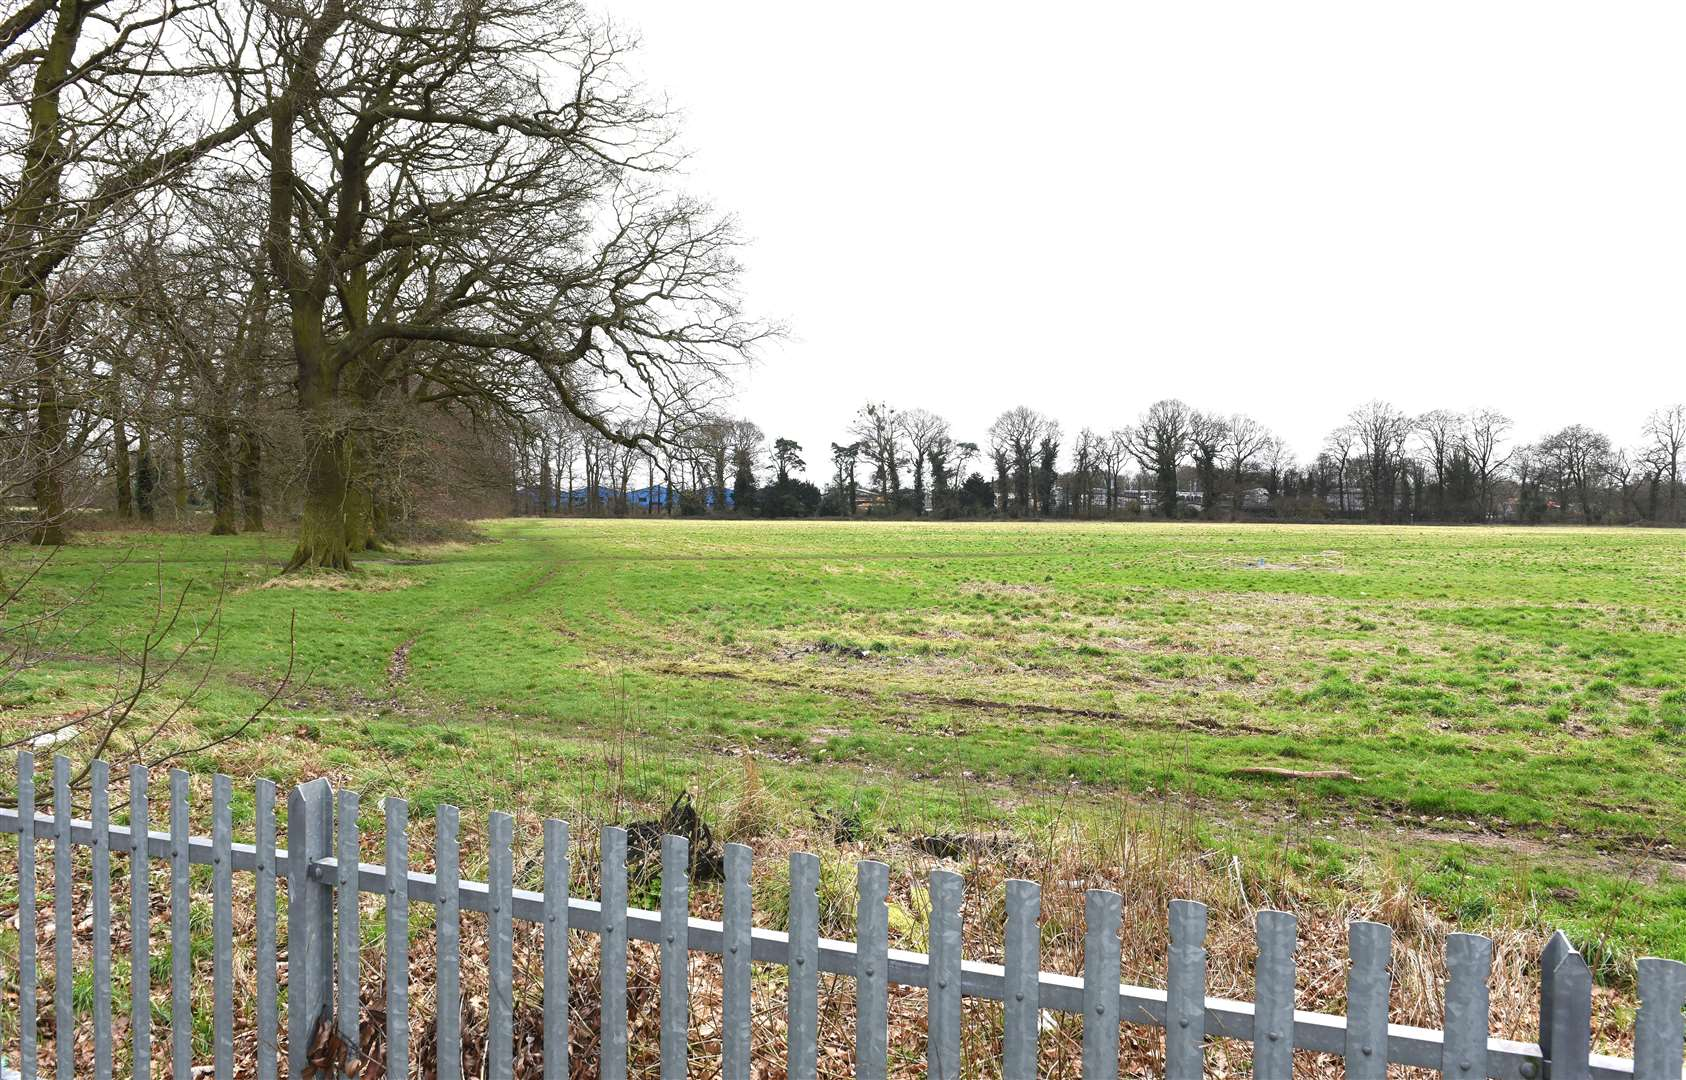 GV Picture of Land which is being Proposed for Possible New Housing Development for the Gaywood Area...Land between King's Lynn Academy Site off Queen Mary Road/Parkway Gaywood and Howard Junior School. (45744555)